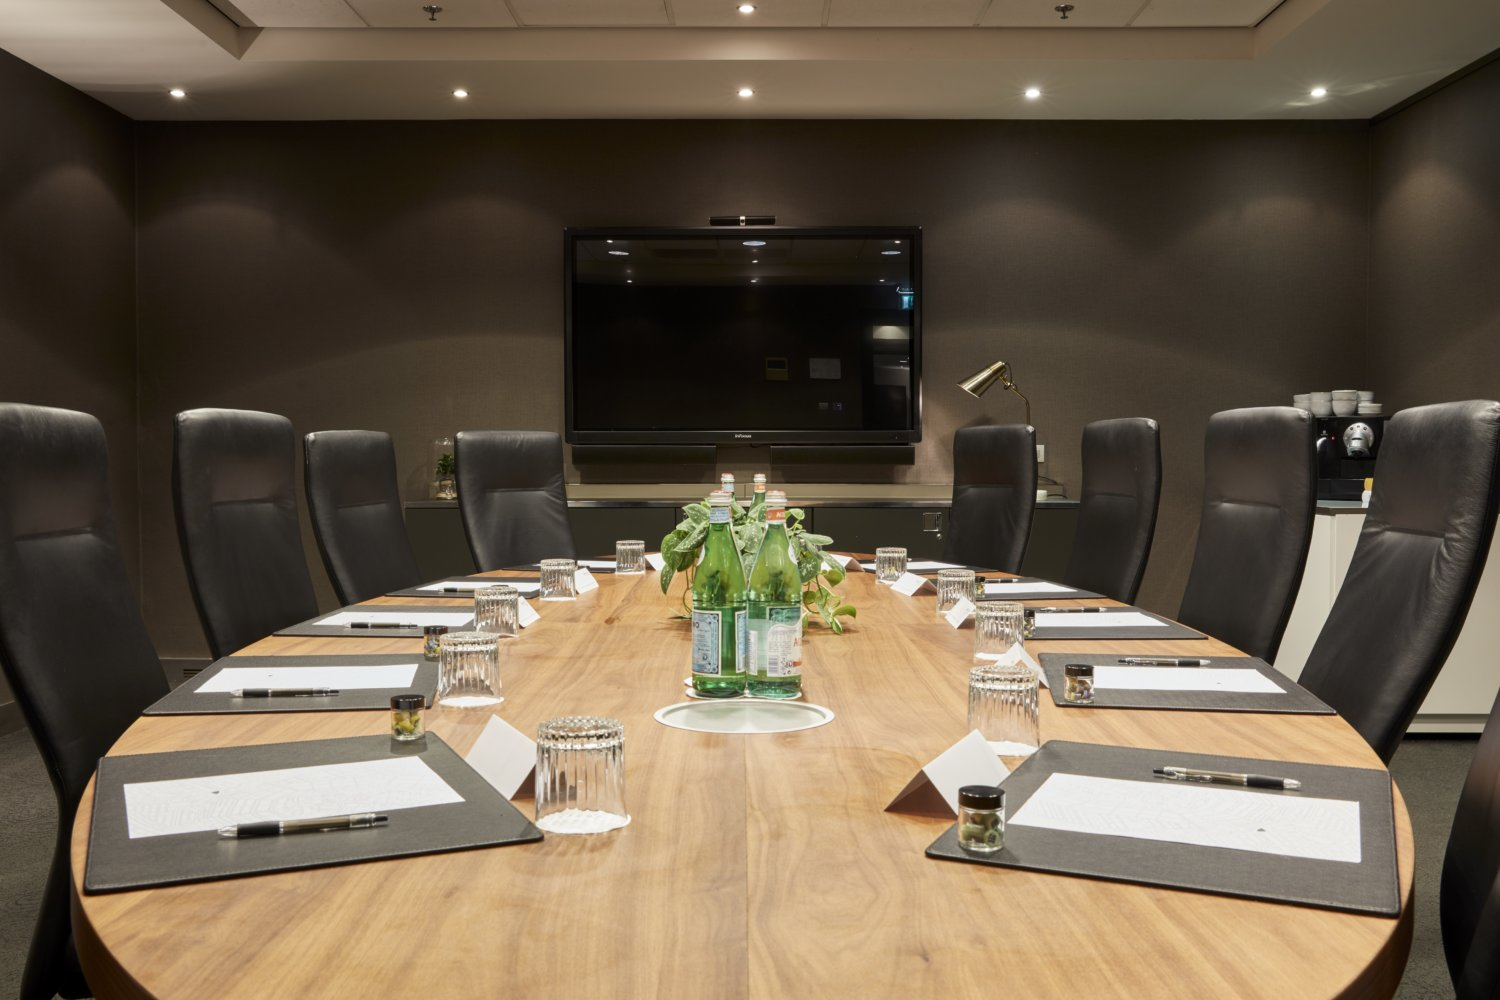 Park Hotel amsterdam Rome meeting room meetings and events